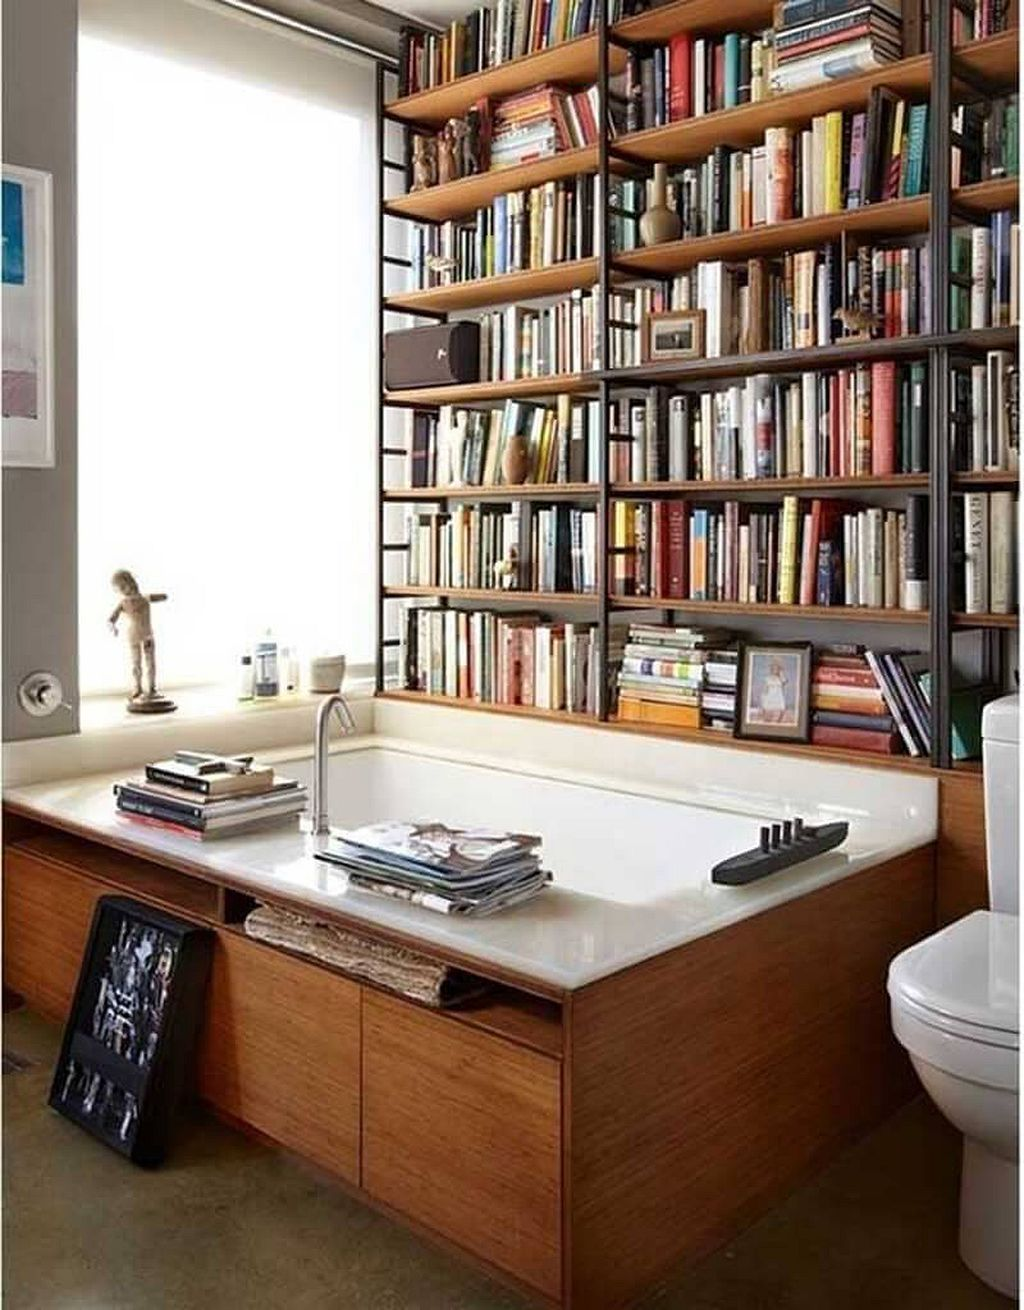 Stunning 10 Things Every Bookworm Should Have